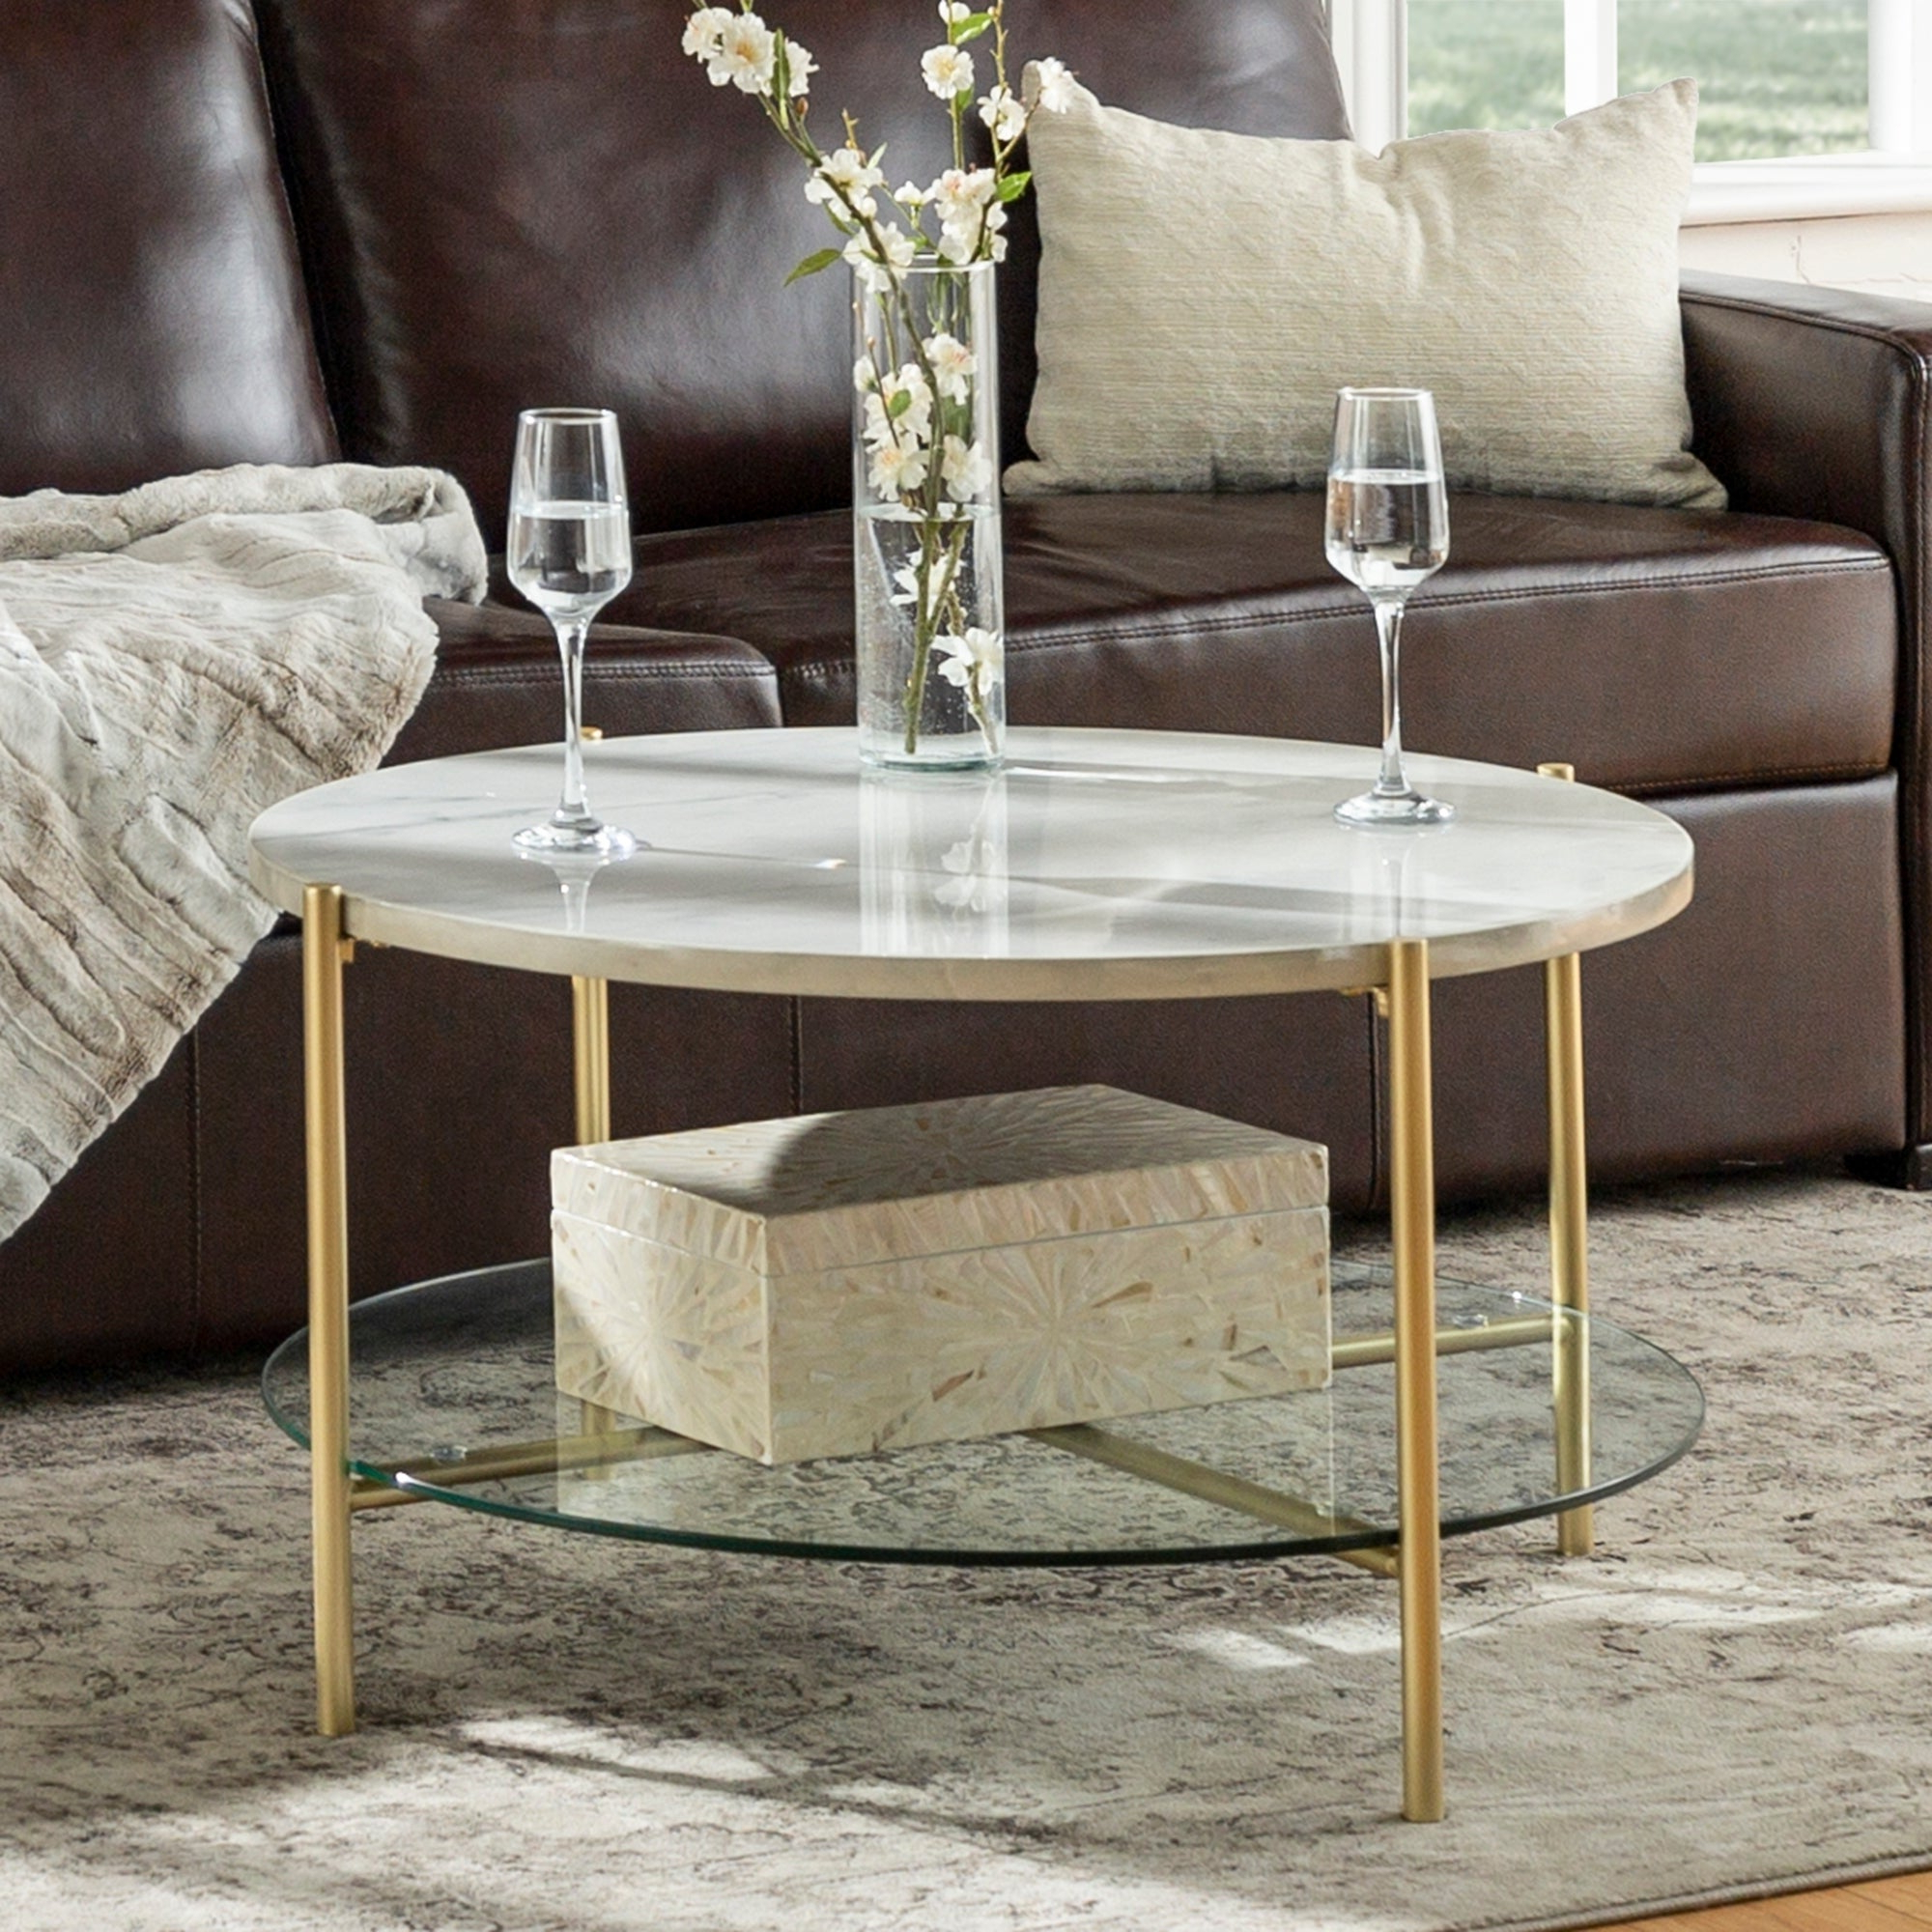 Most Popular Silver Orchid Ipsen Round Coffee Tables With X Base With Silver Orchid 32 Inch Ipsen Round Coffee Table, Modern, Faux Marble Accent Cocktail Table For Living Room – 32 X 32 X 17h (View 12 of 20)